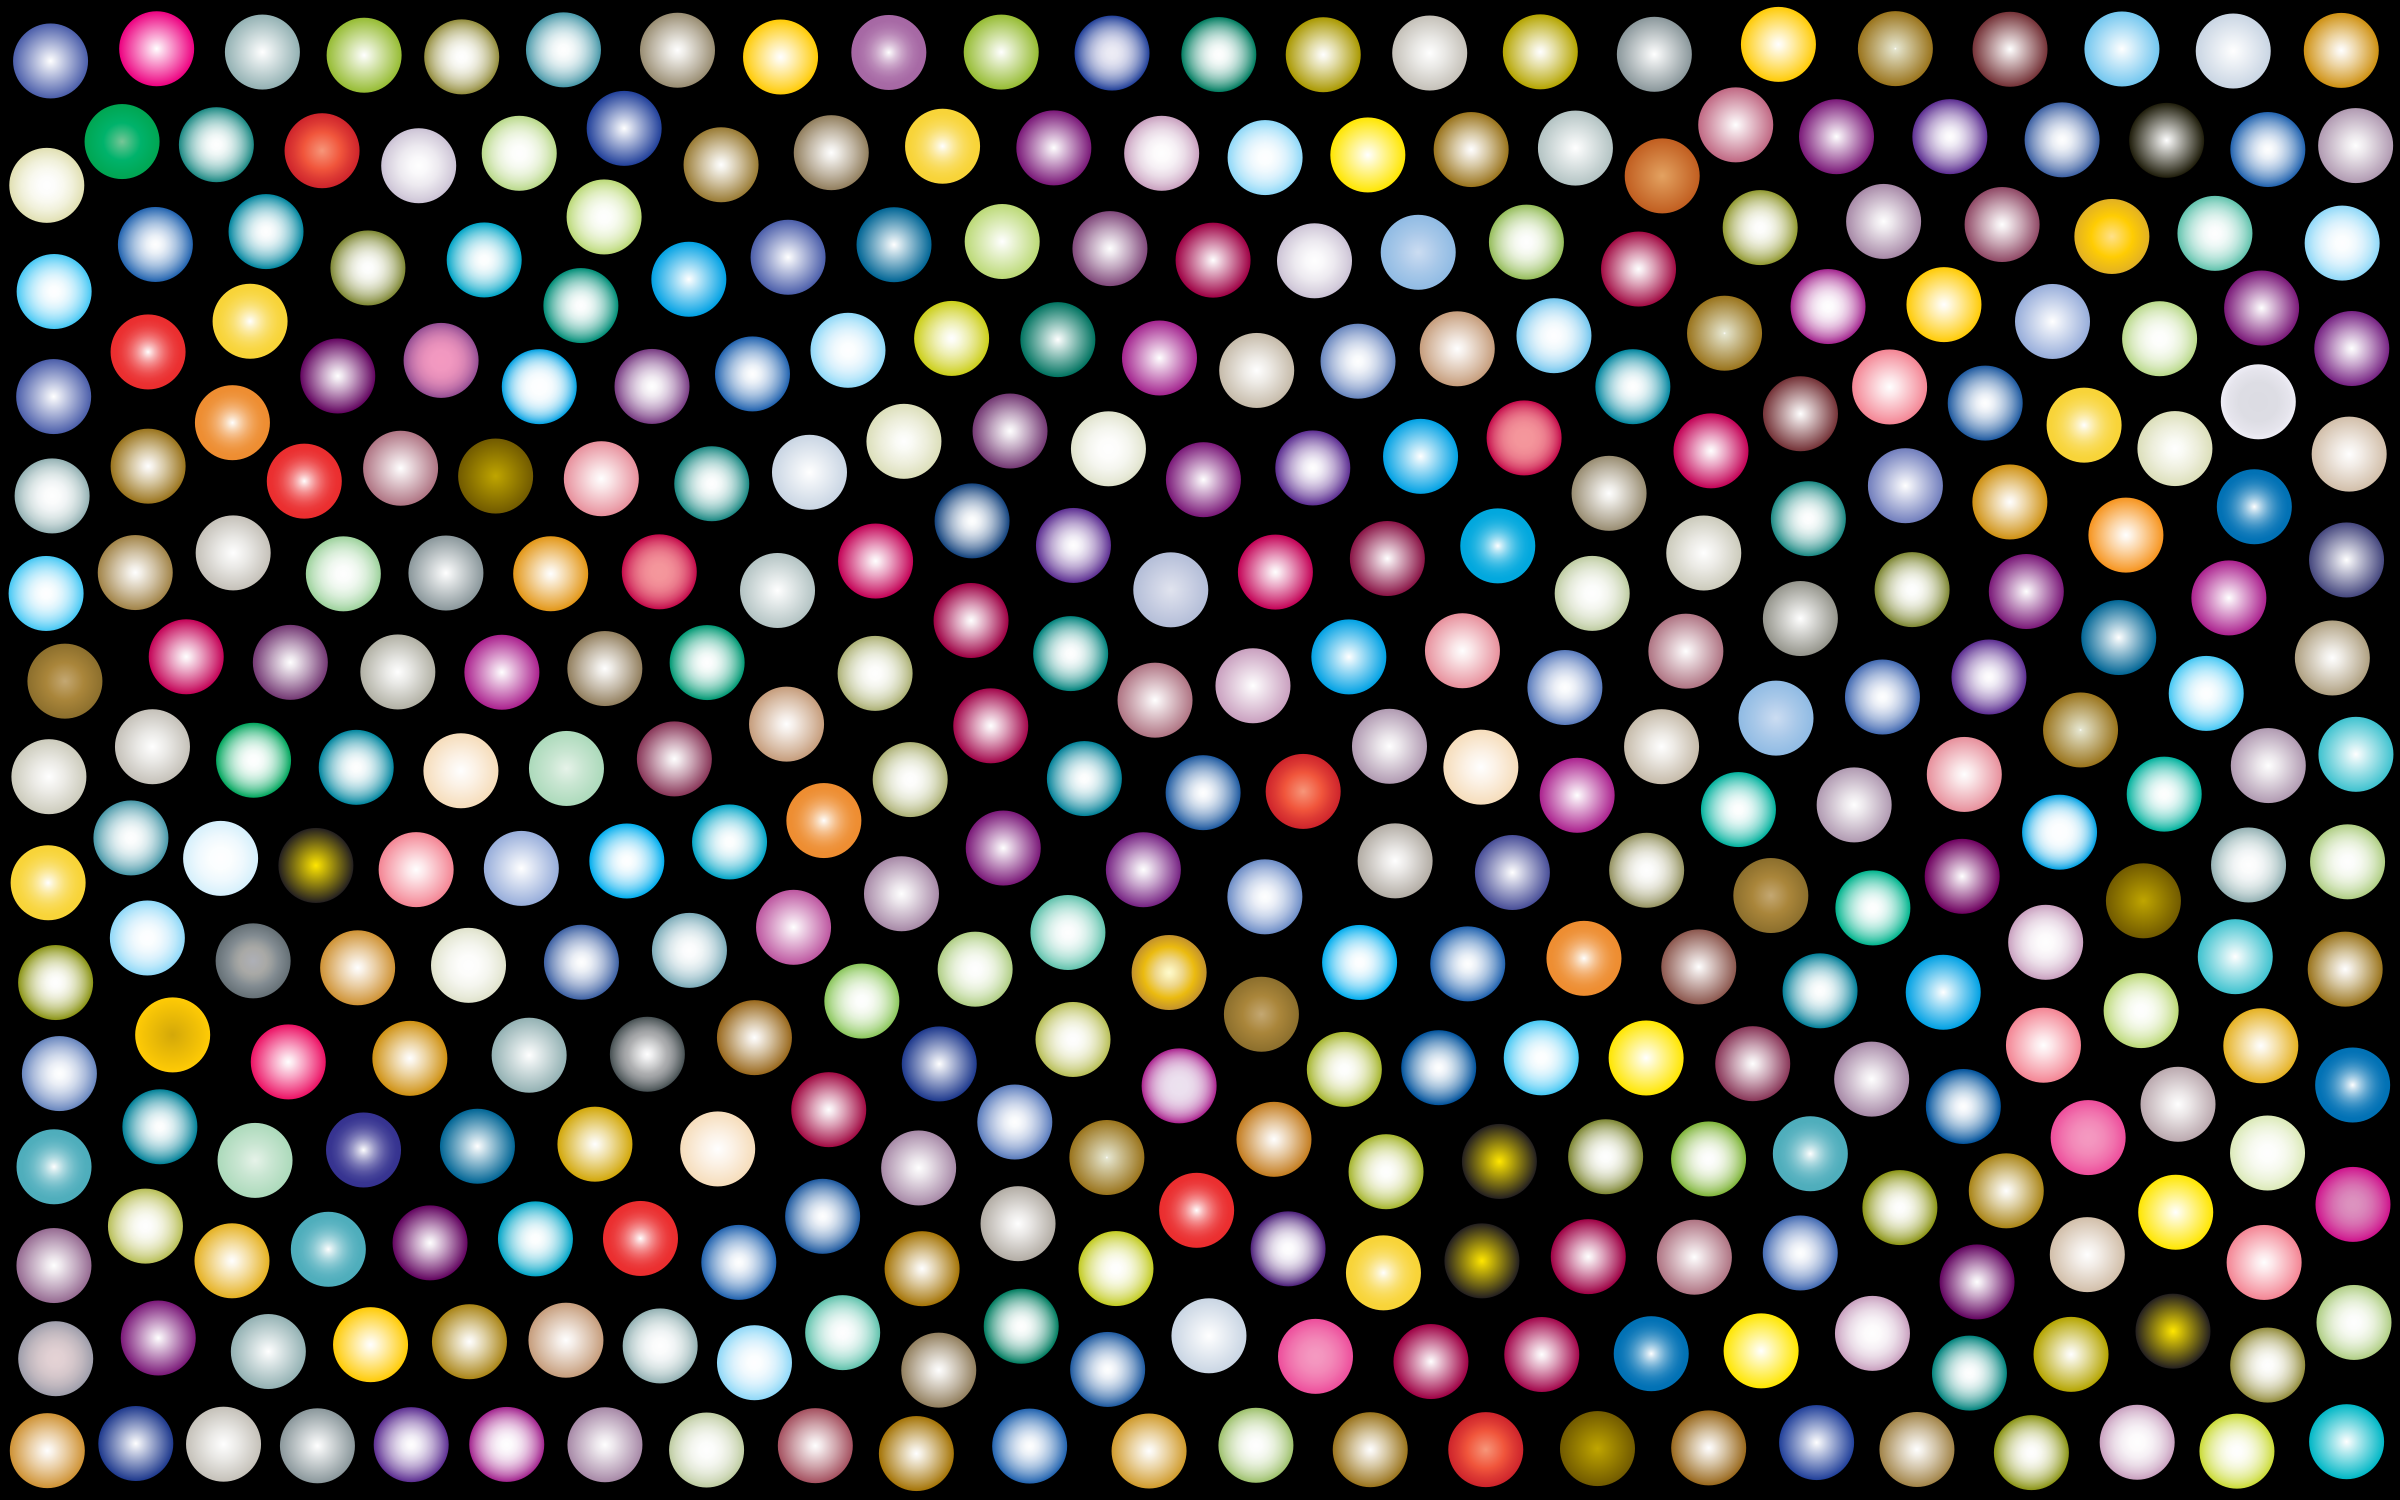 Prismatic Dots Background 3 by GDJ